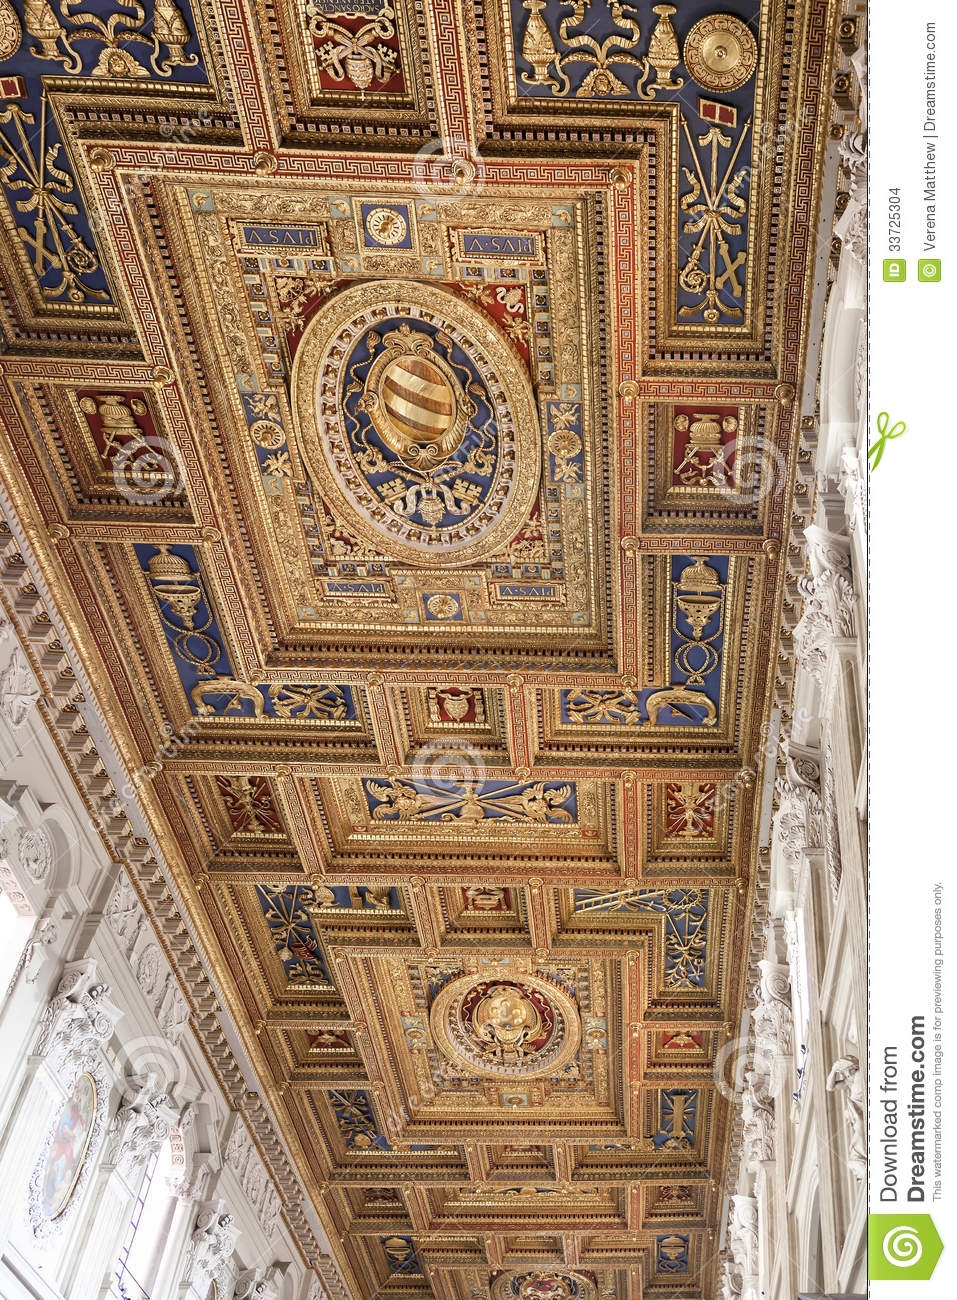 Basilica Of St John Lateran Ceiling Stock Photo Image